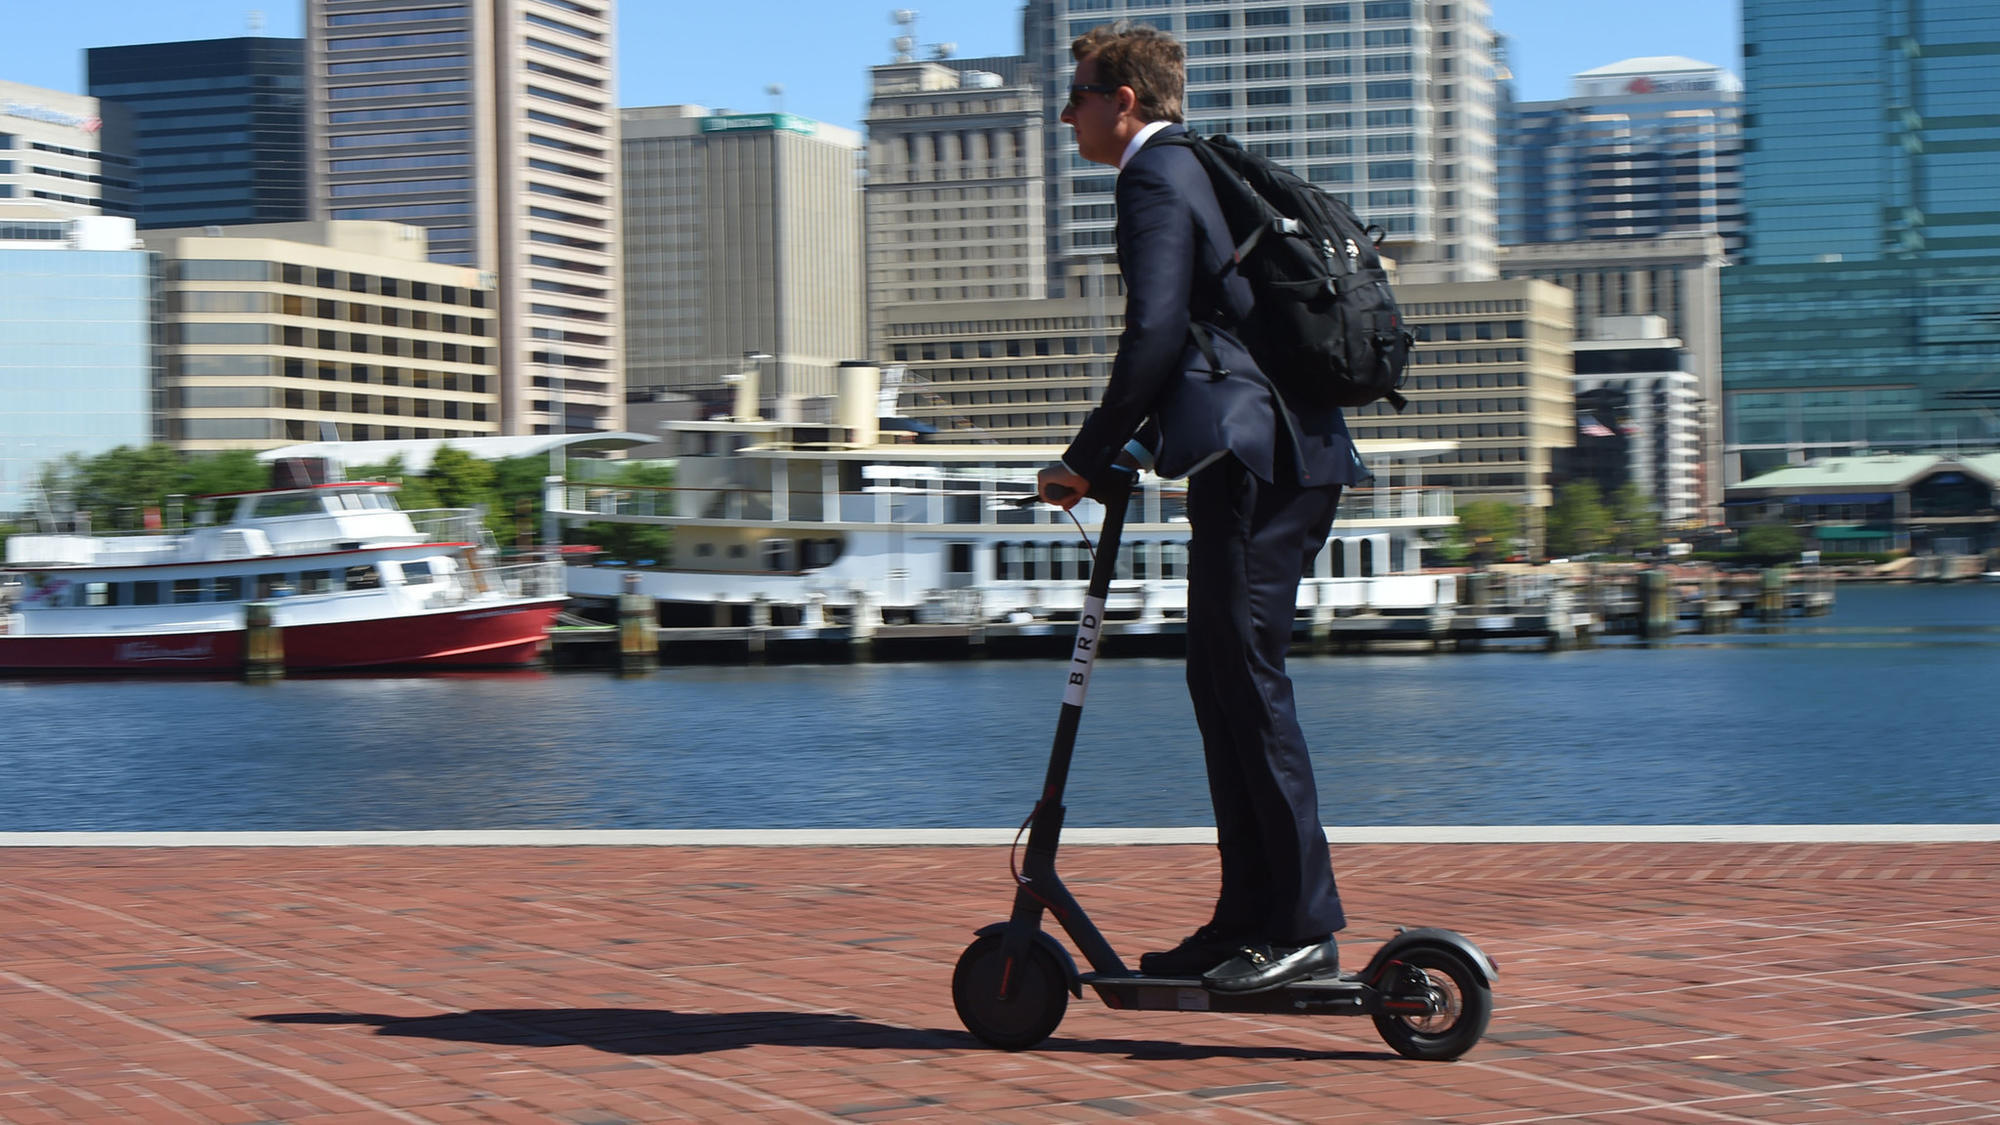 Electric Scooter Battery >> Bird electric scooters have landed in Baltimore. Now the city is trying to figure out how to ...